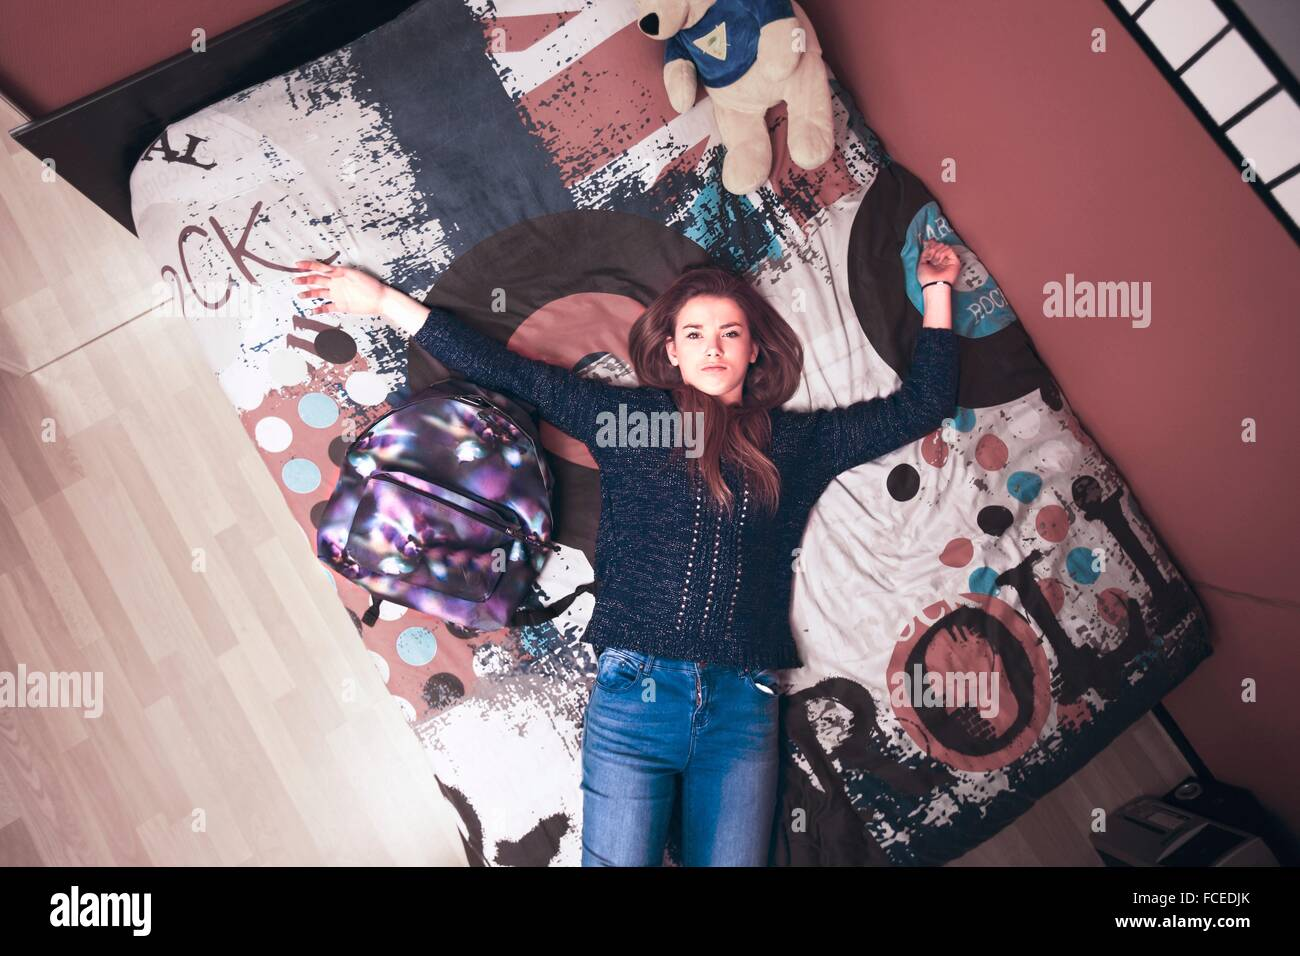 France, teenager at home, tired after school - Stock Image